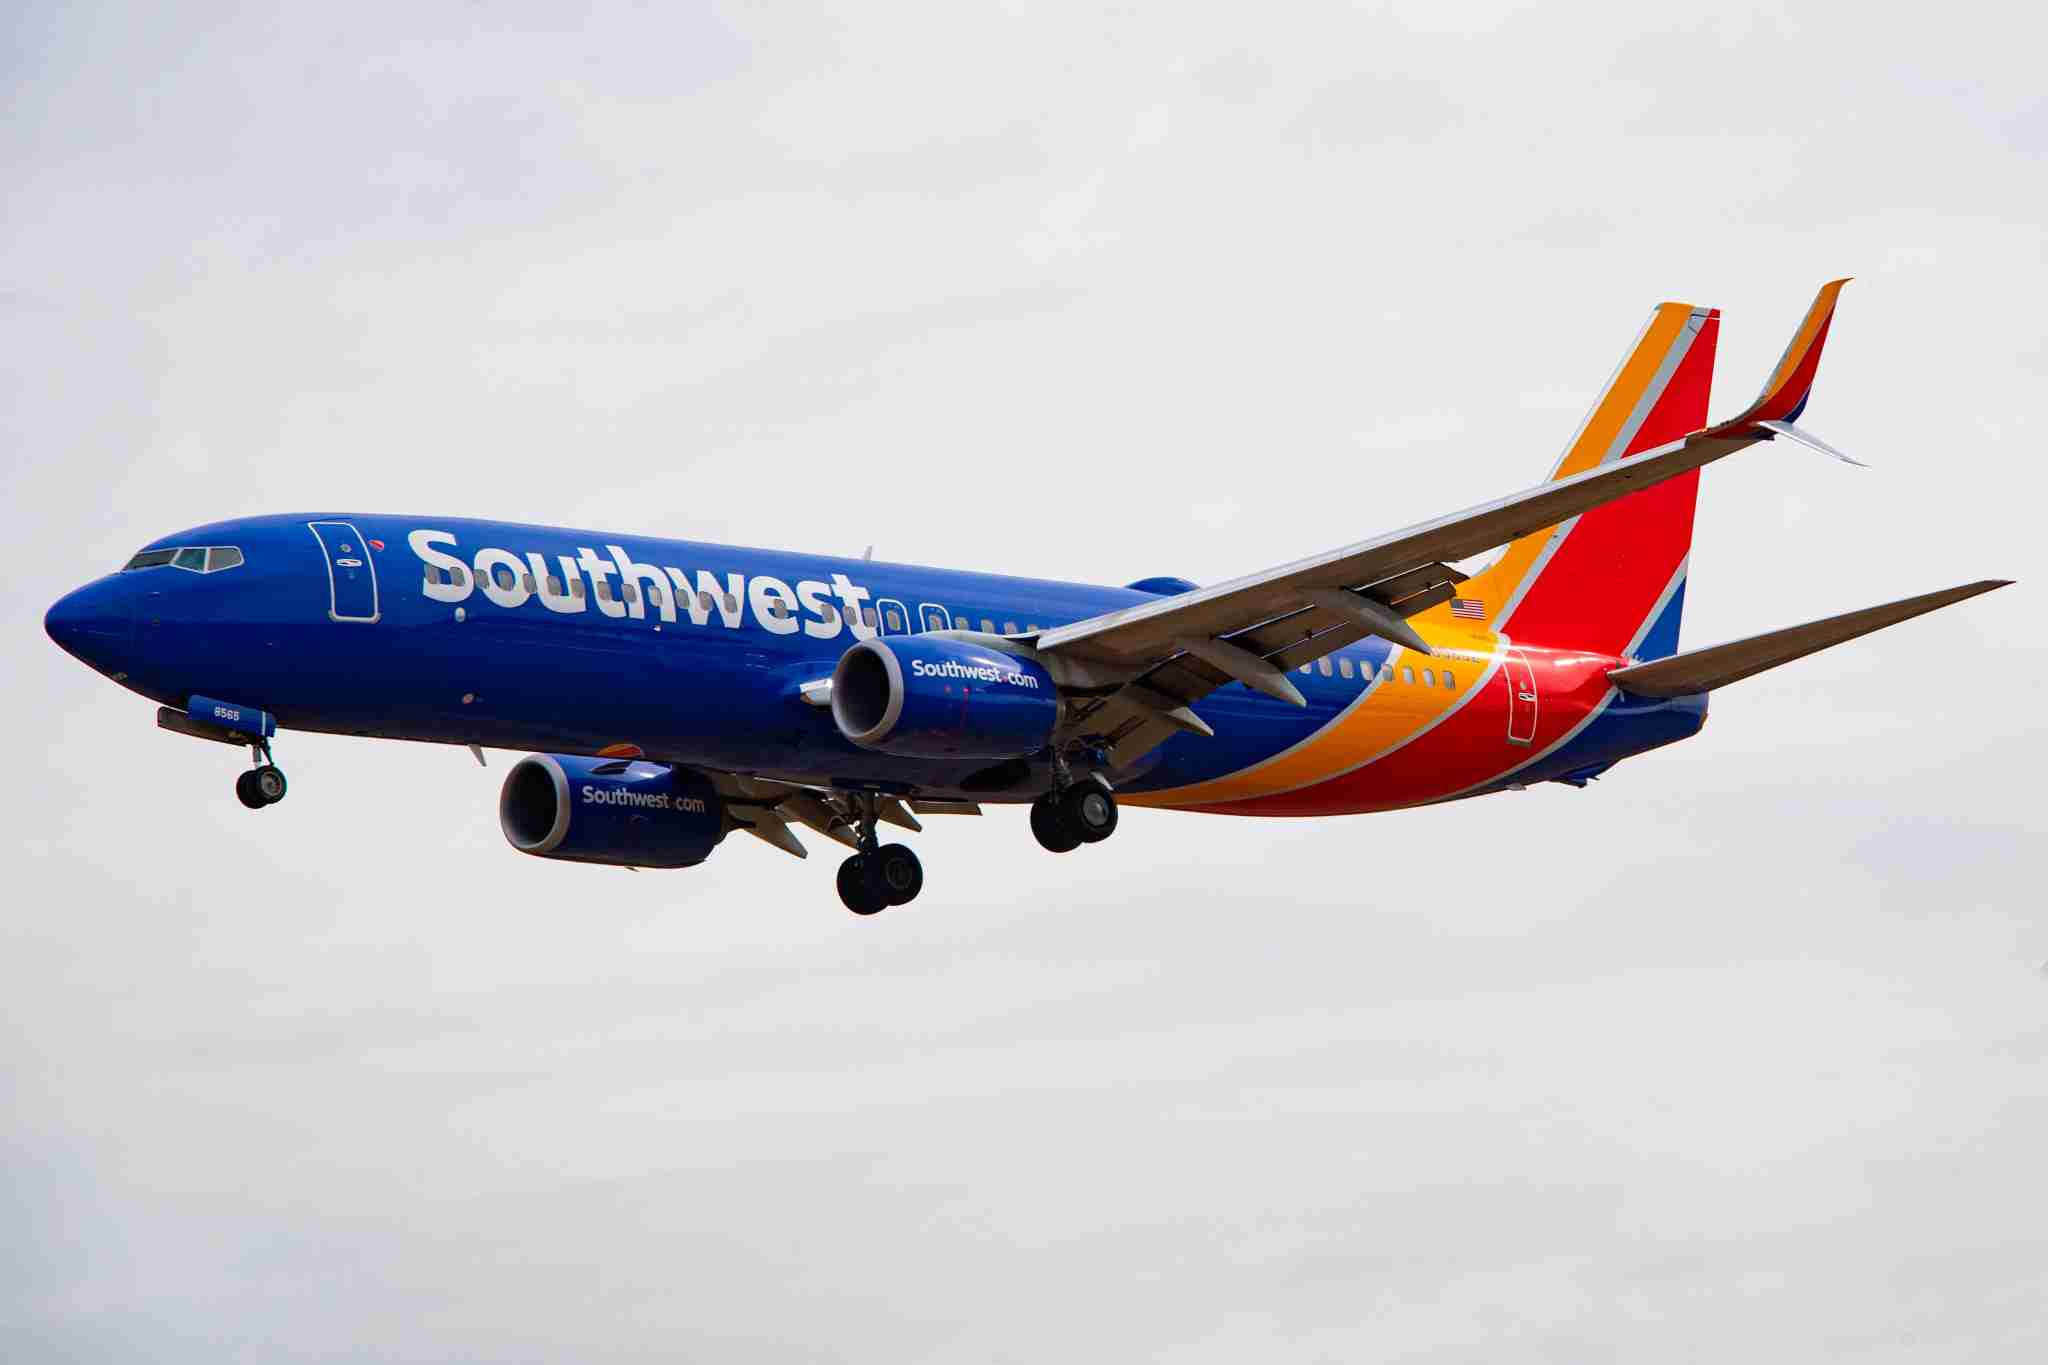 A Southwest Airlines Boeing 737-800 approaches for landing at Baltimore/Washington International Airport on March 11, 2019. (Photo by Jim WATSON / AFP)